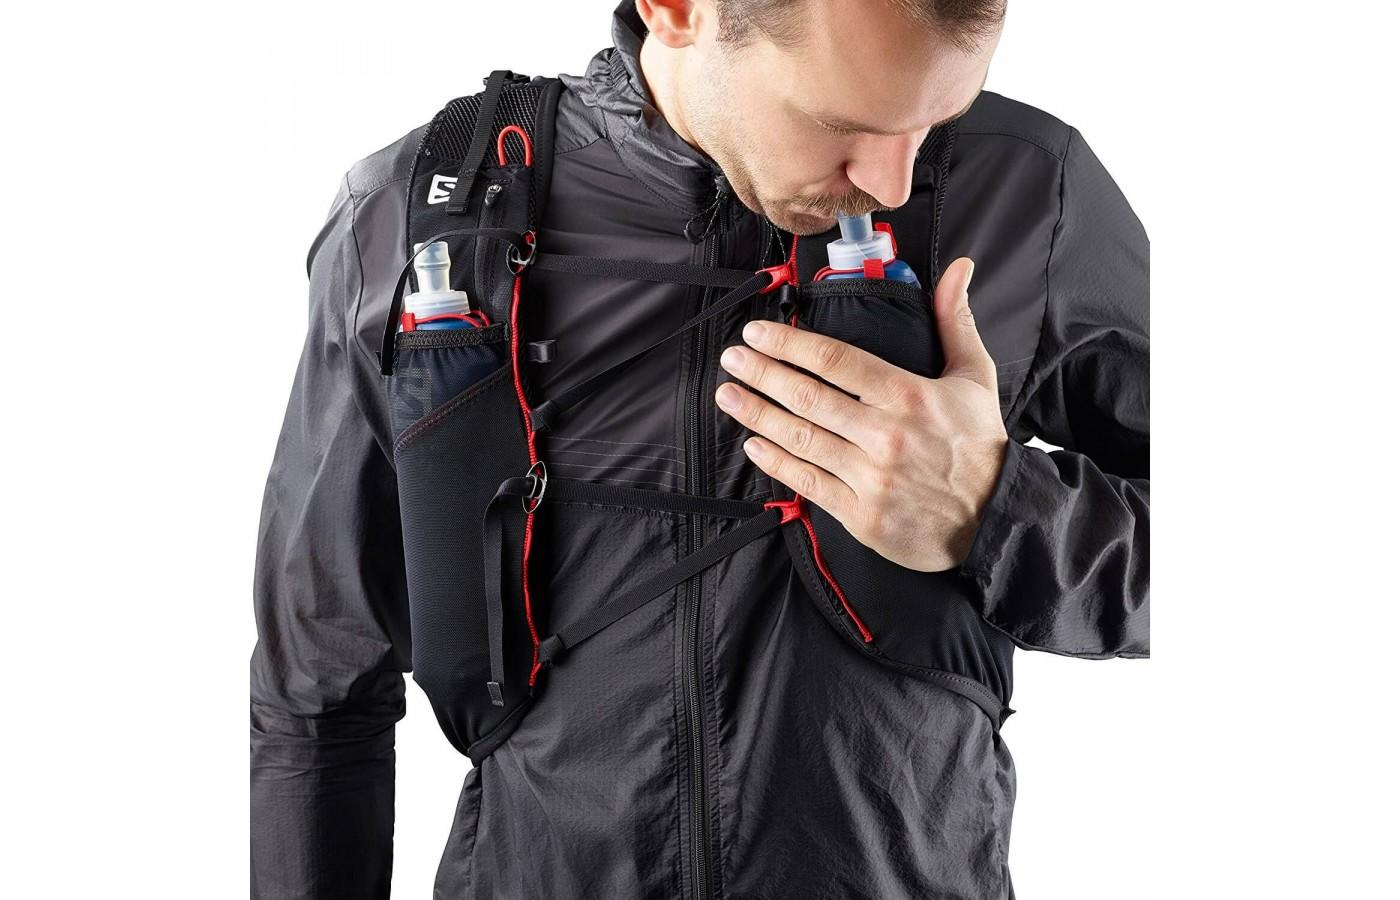 The pockets are perfectly placed so that athletes can access all of their items without the need to take the vest off.